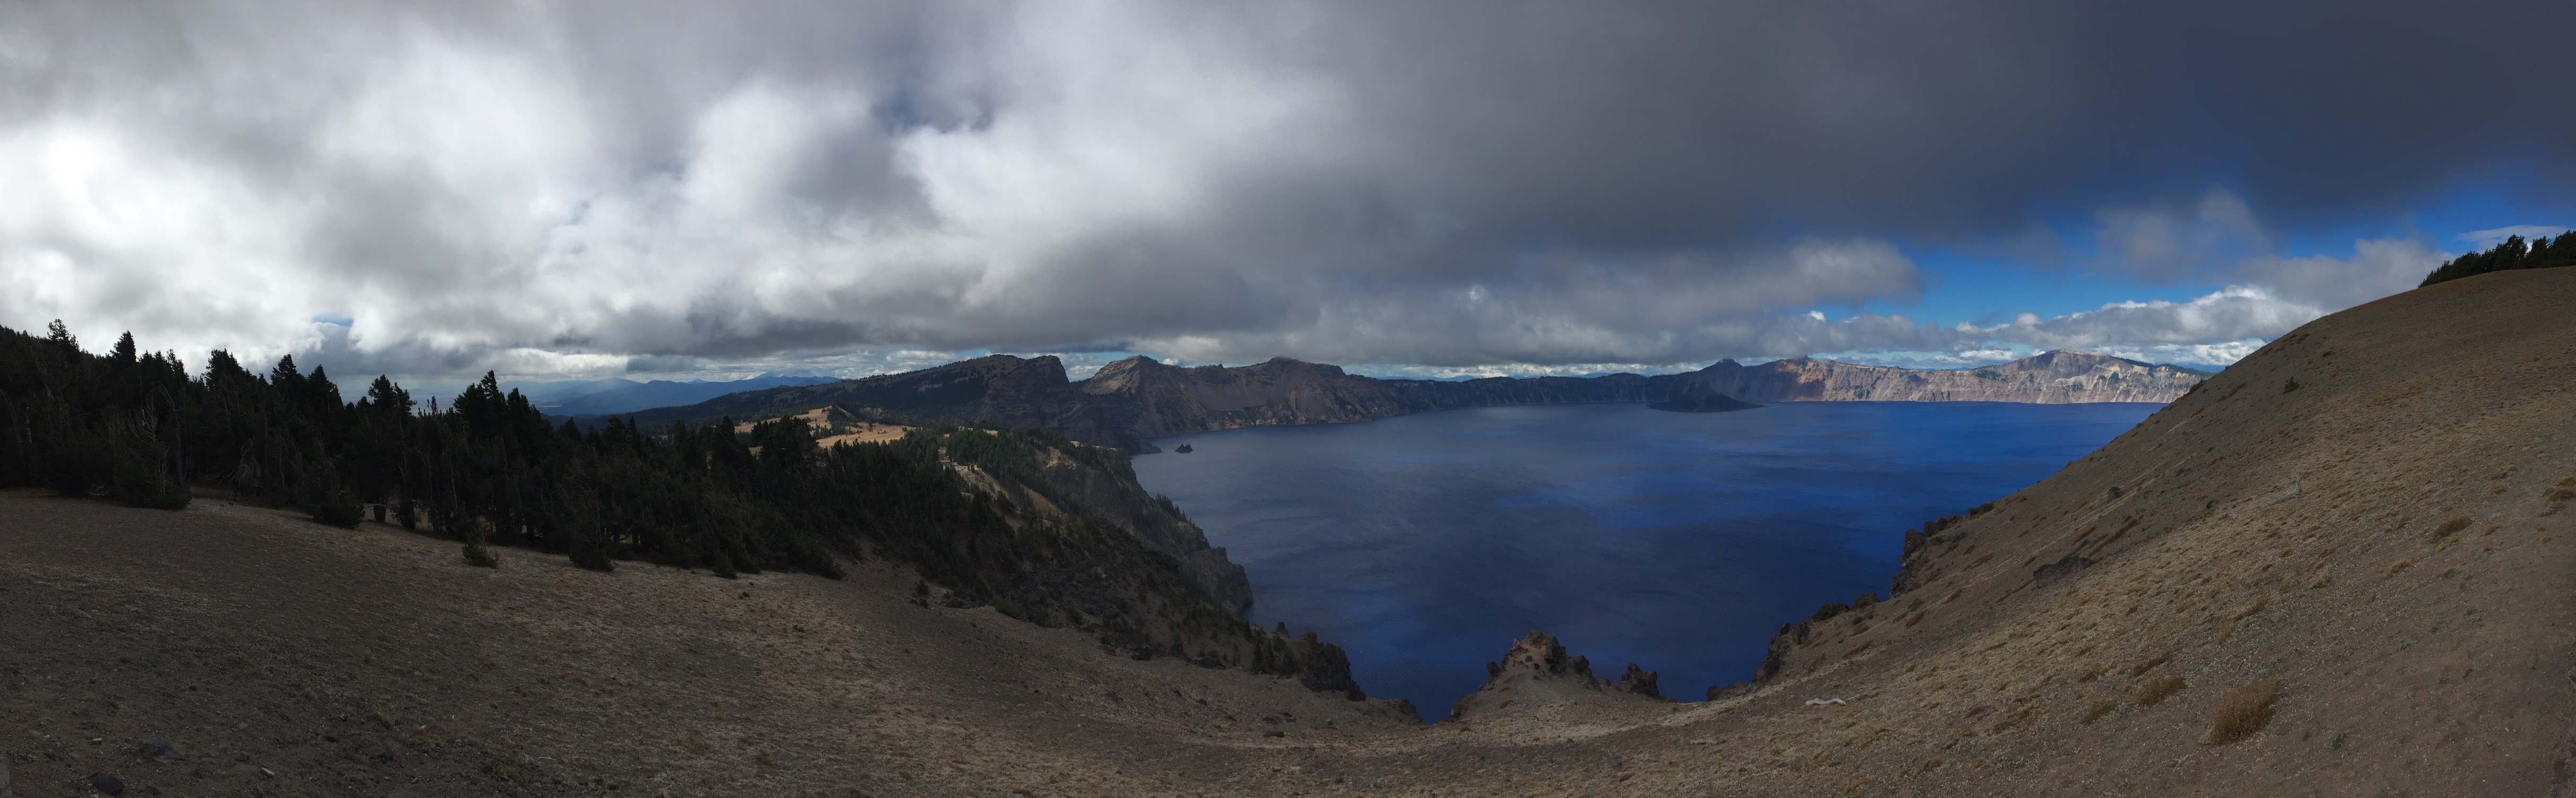 A panorama of the deep-blue Crater Lake and the ominous clouds above.